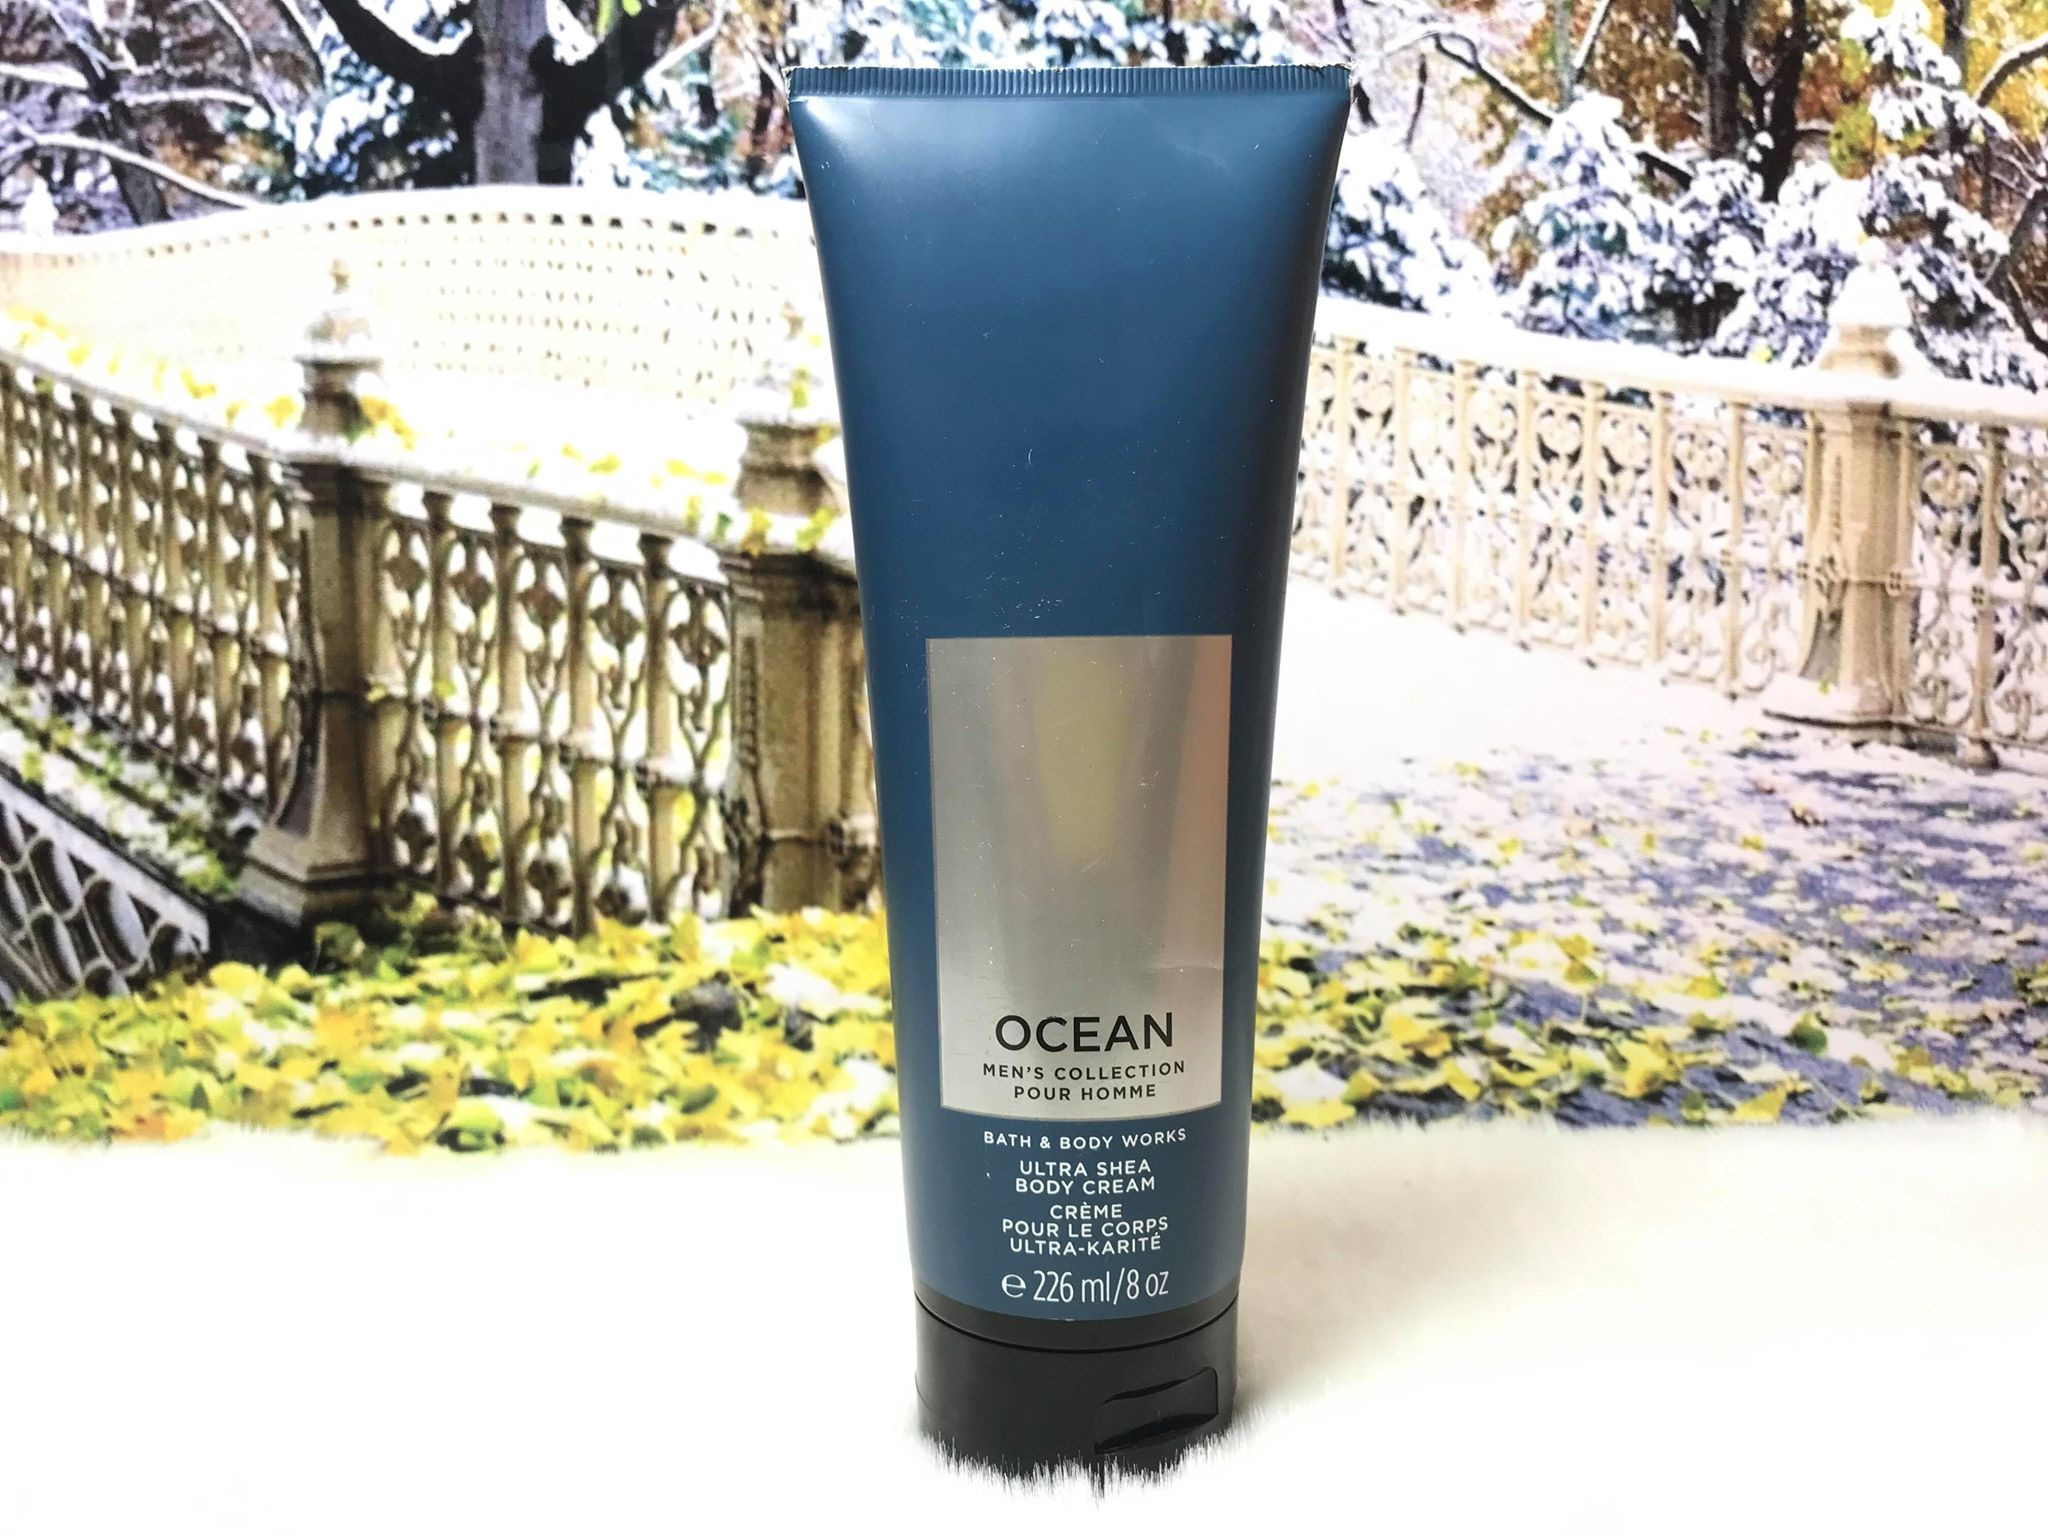 Dưỡng Thể Ocean Mens Collection Pour Homme 226ml